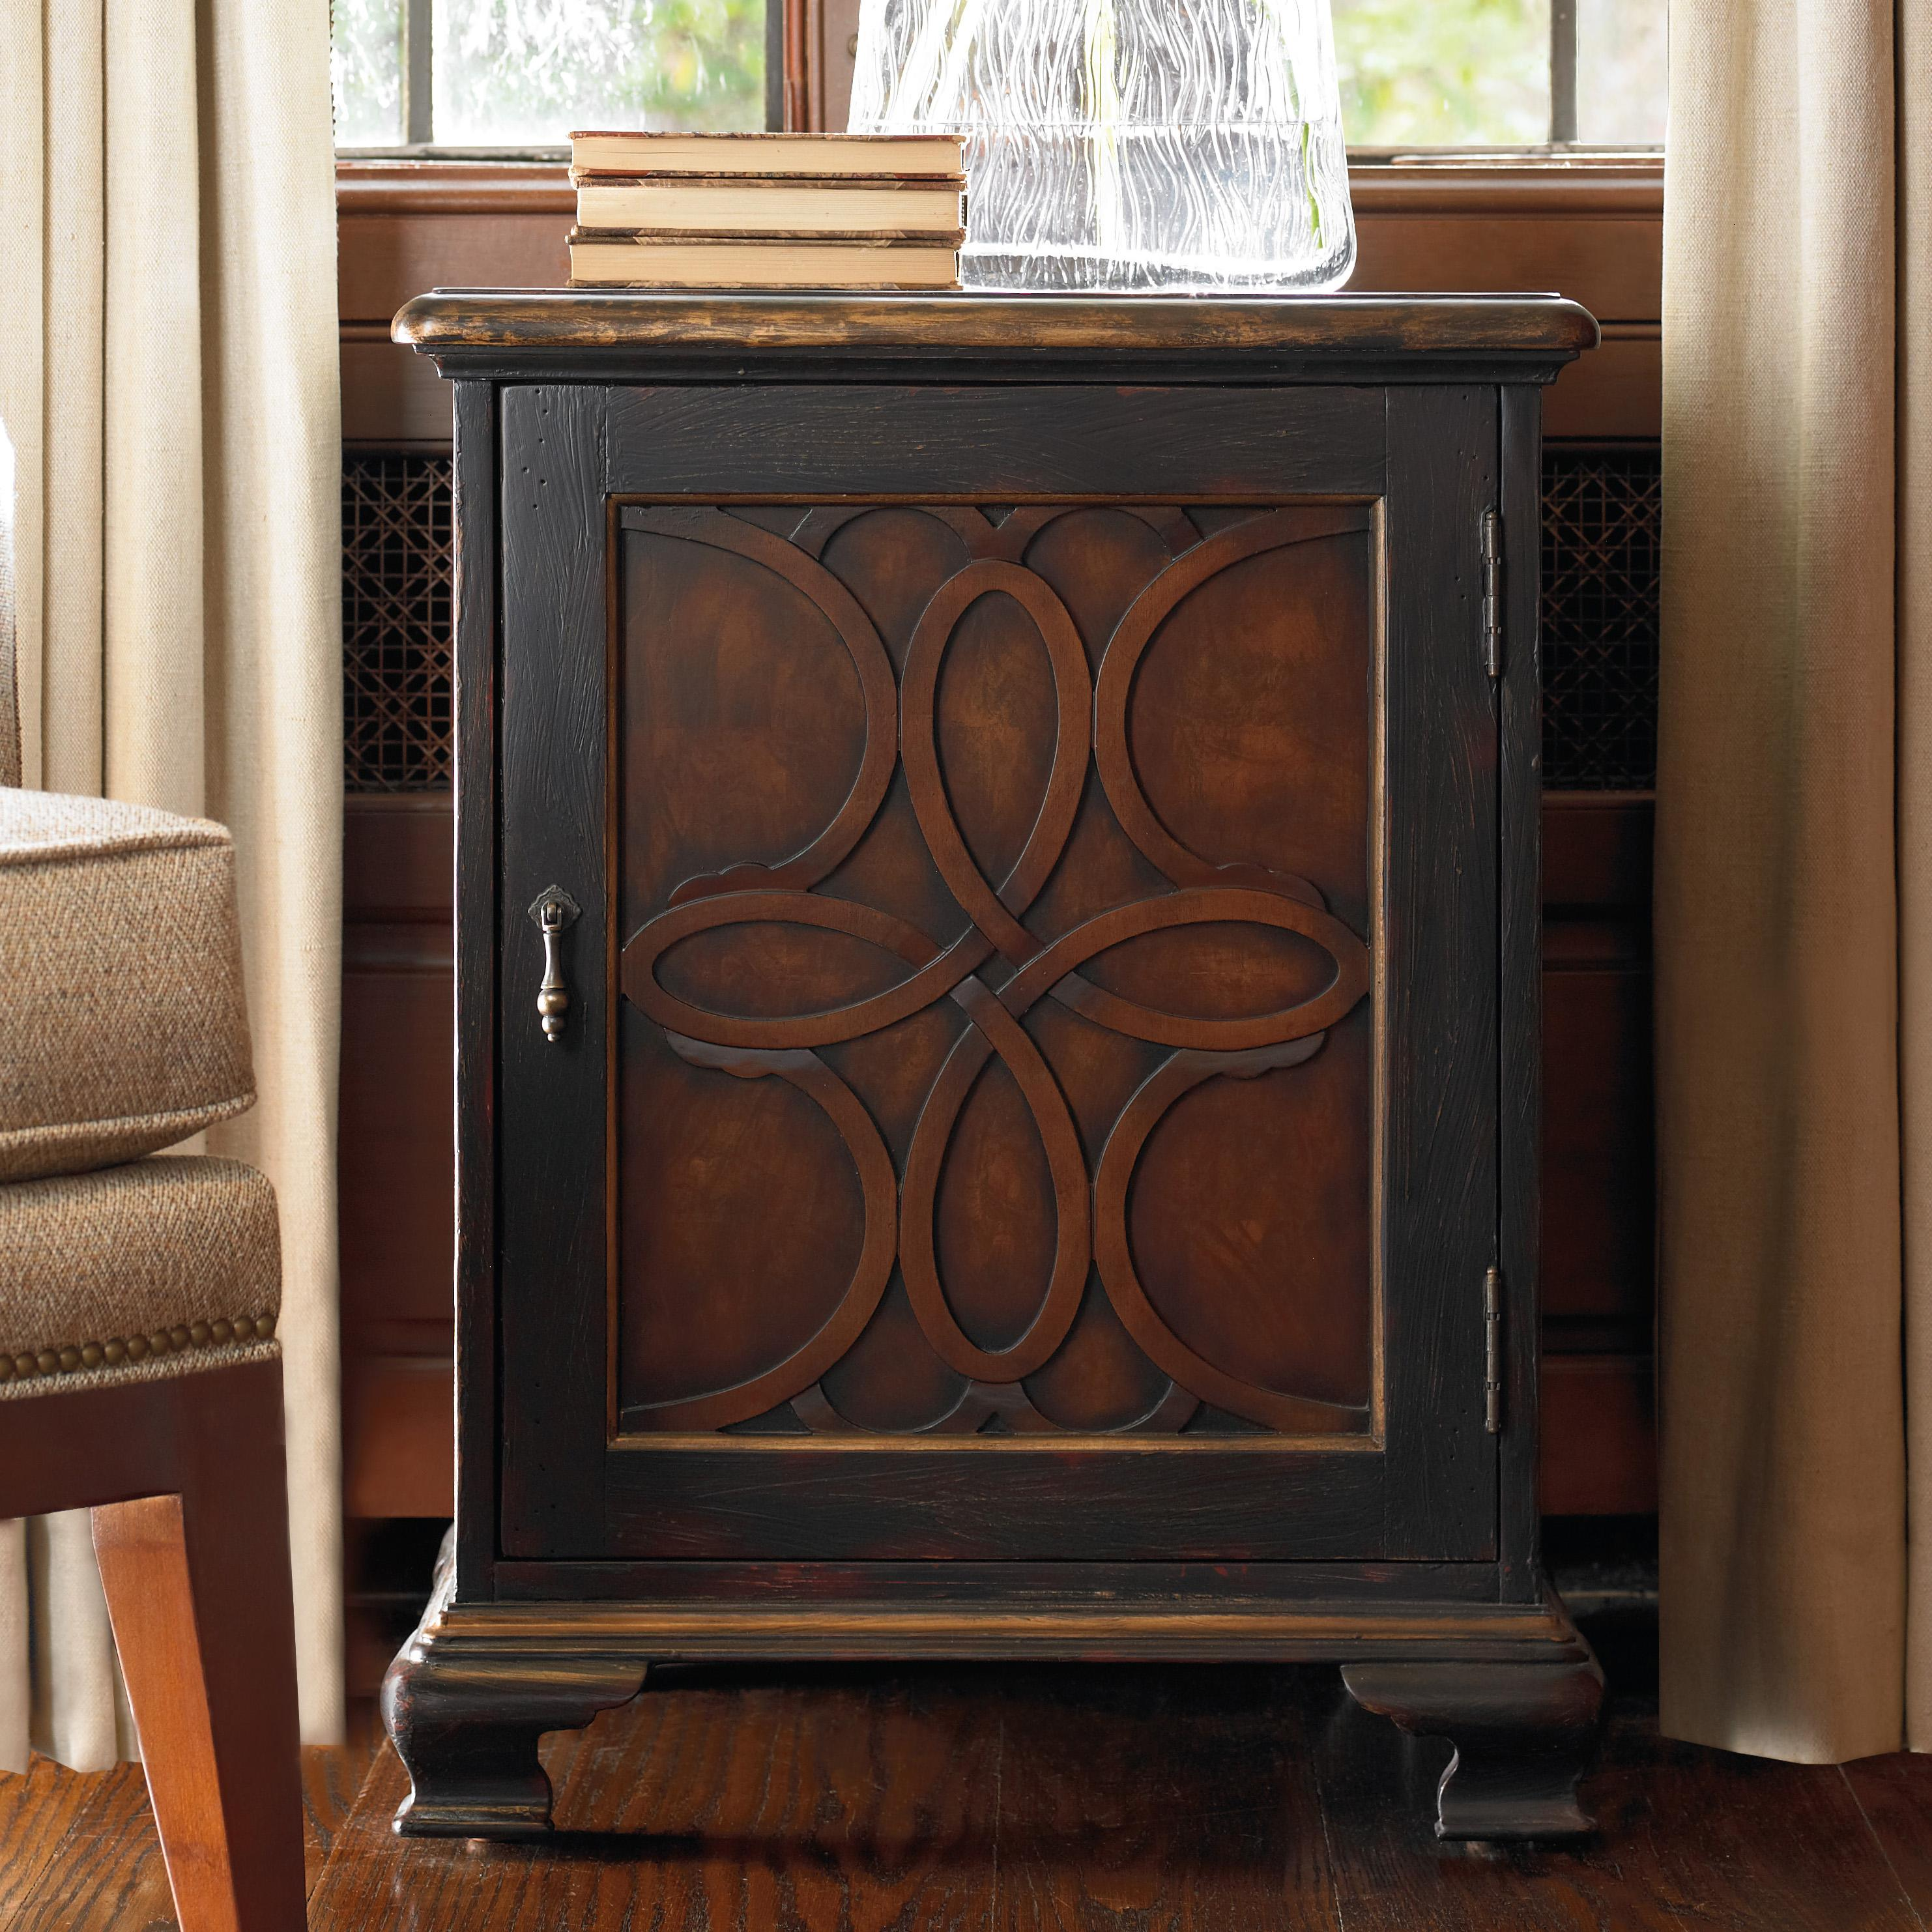 Hamilton Home Living Room Accents Accent Chest - Item Number: 500-50-819